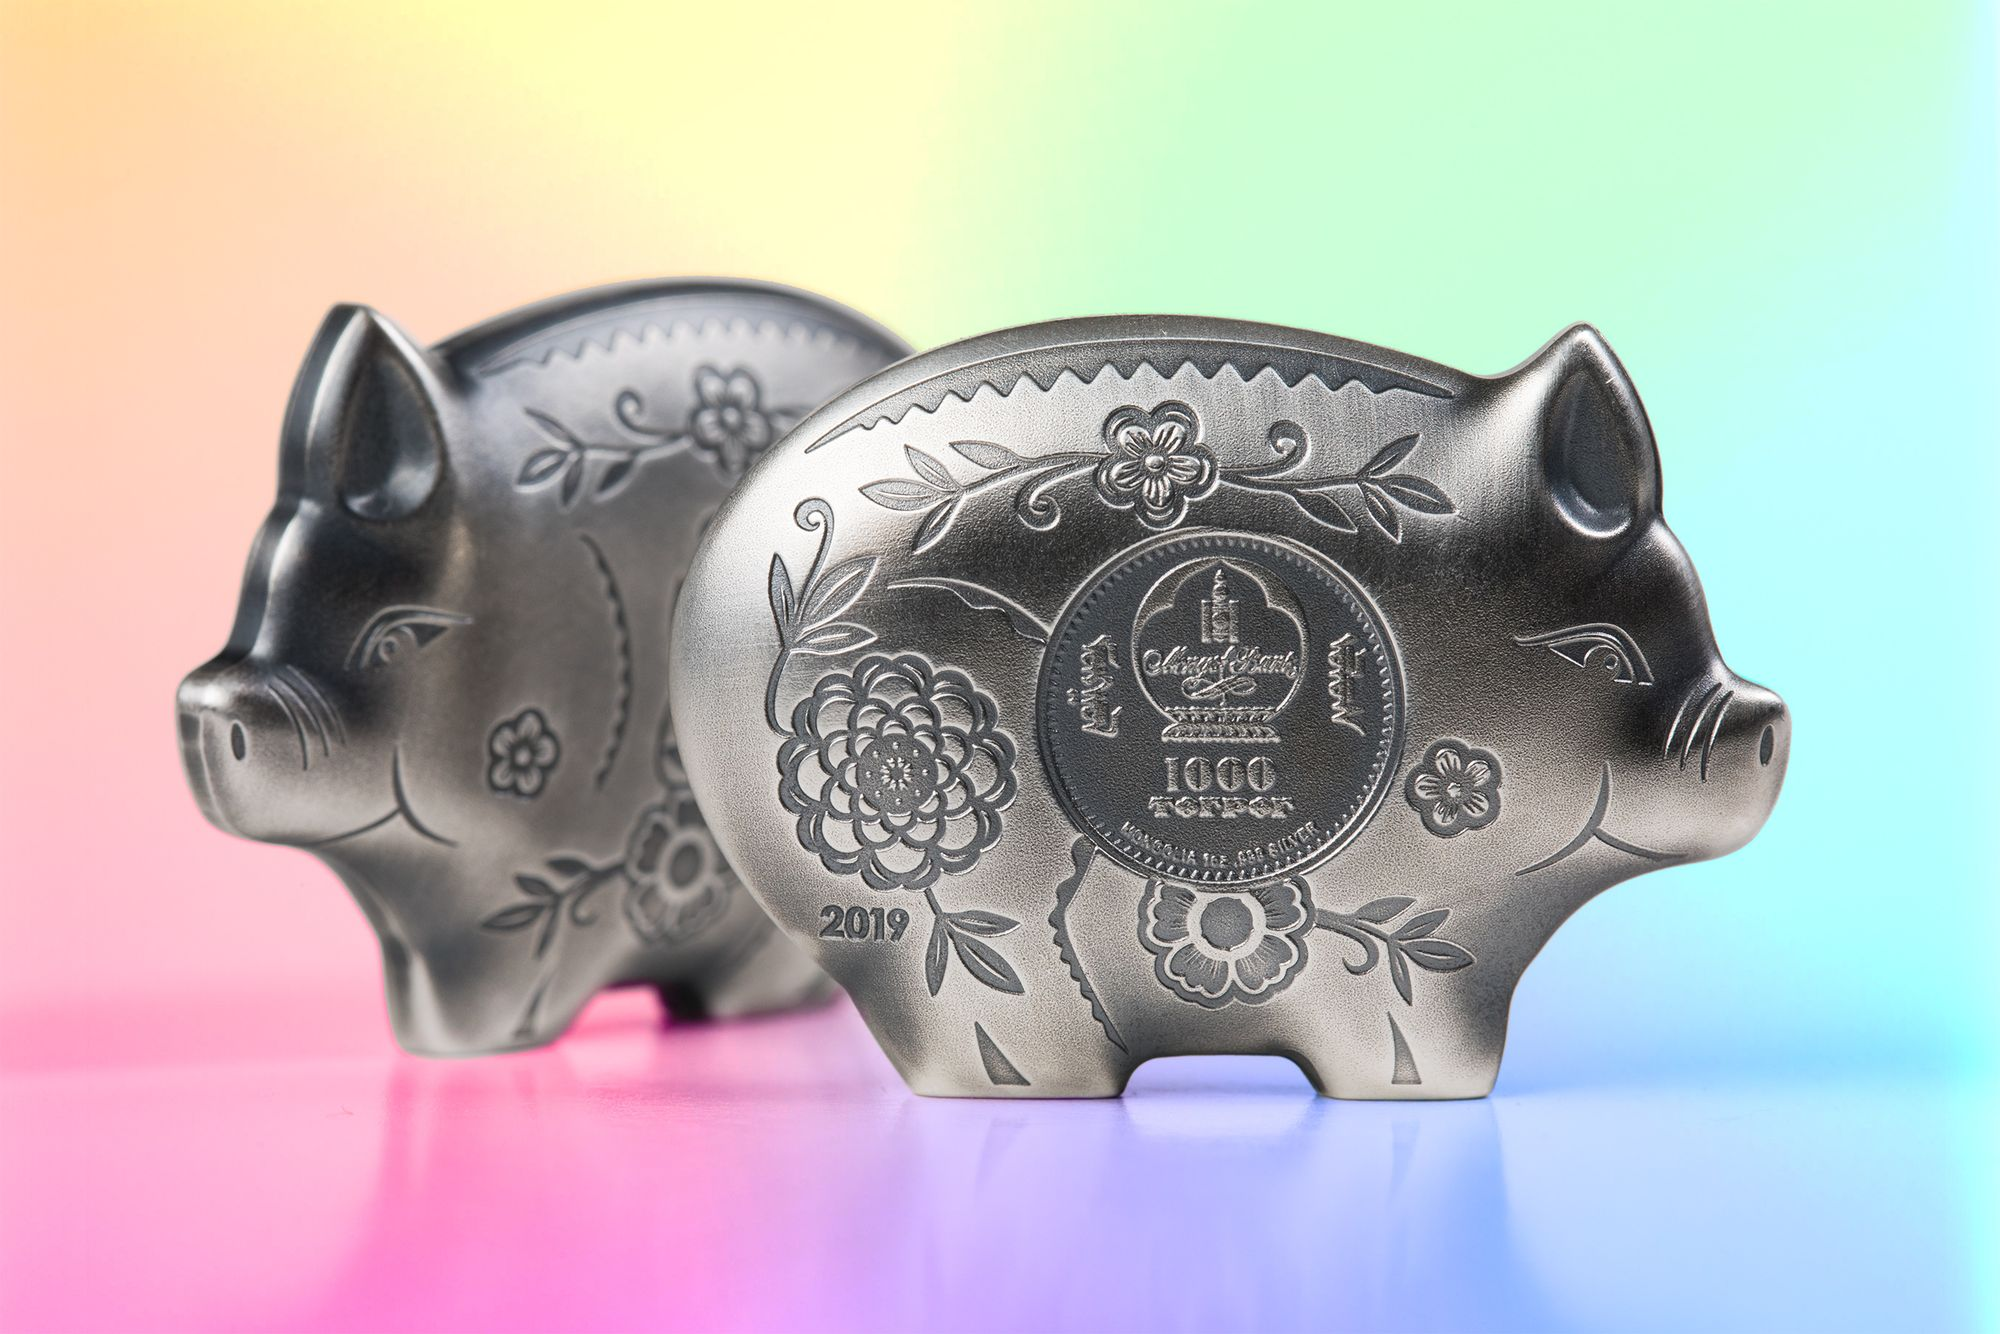 2019 Lunar Year Series Year of the Pig Jolly Silver Pig